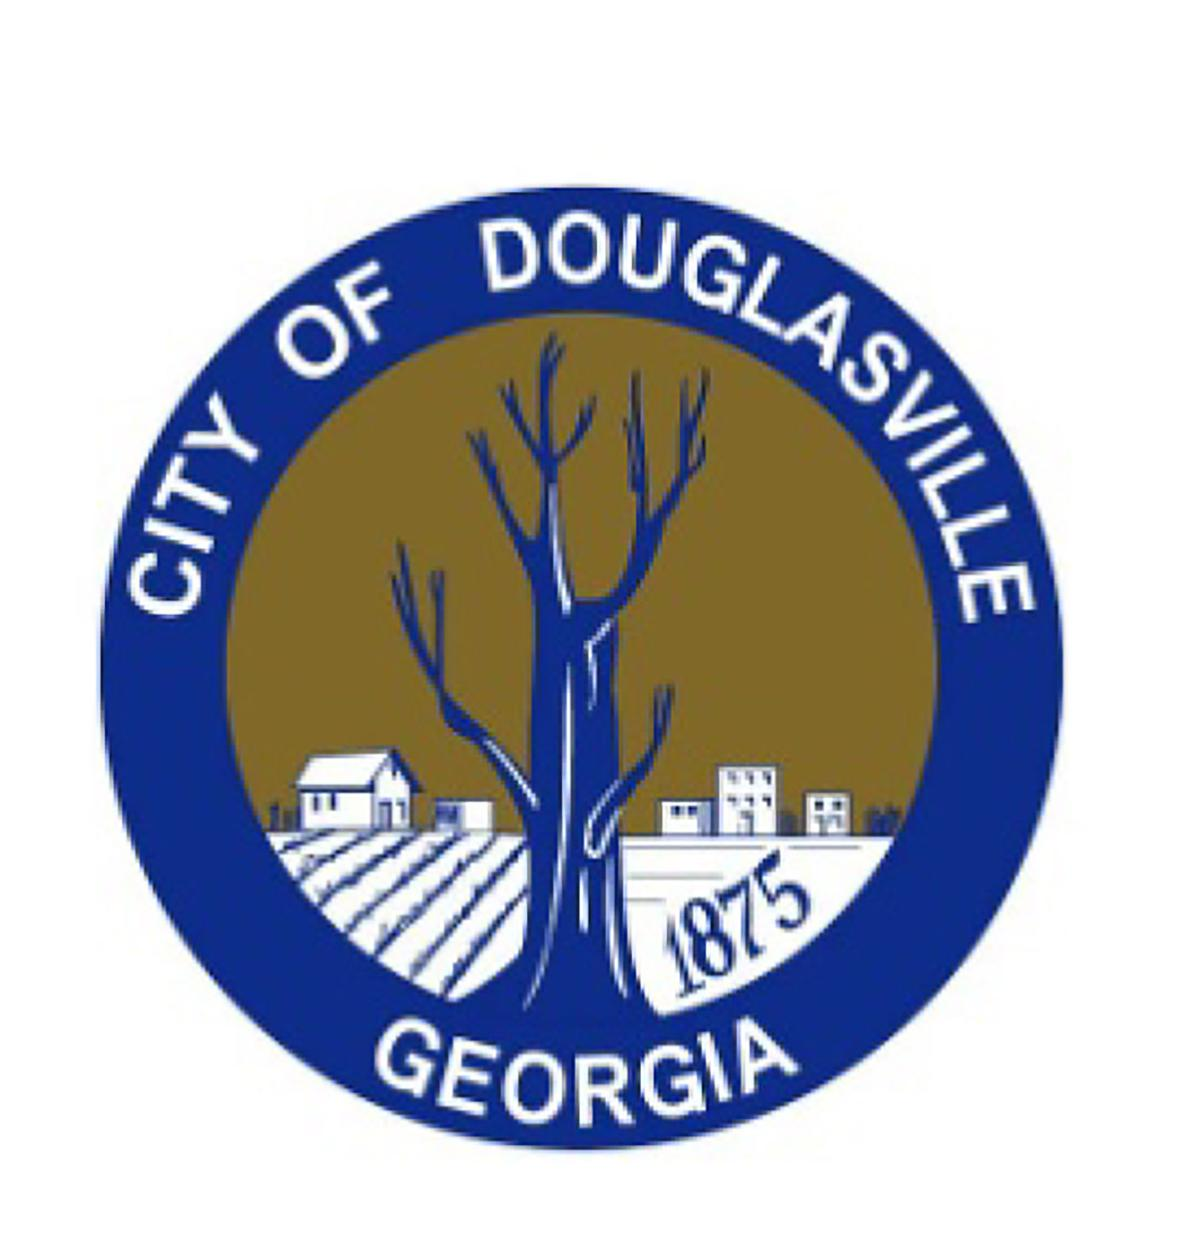 200m Data Center Planned In Douglasville Could Bring 38 Jobs